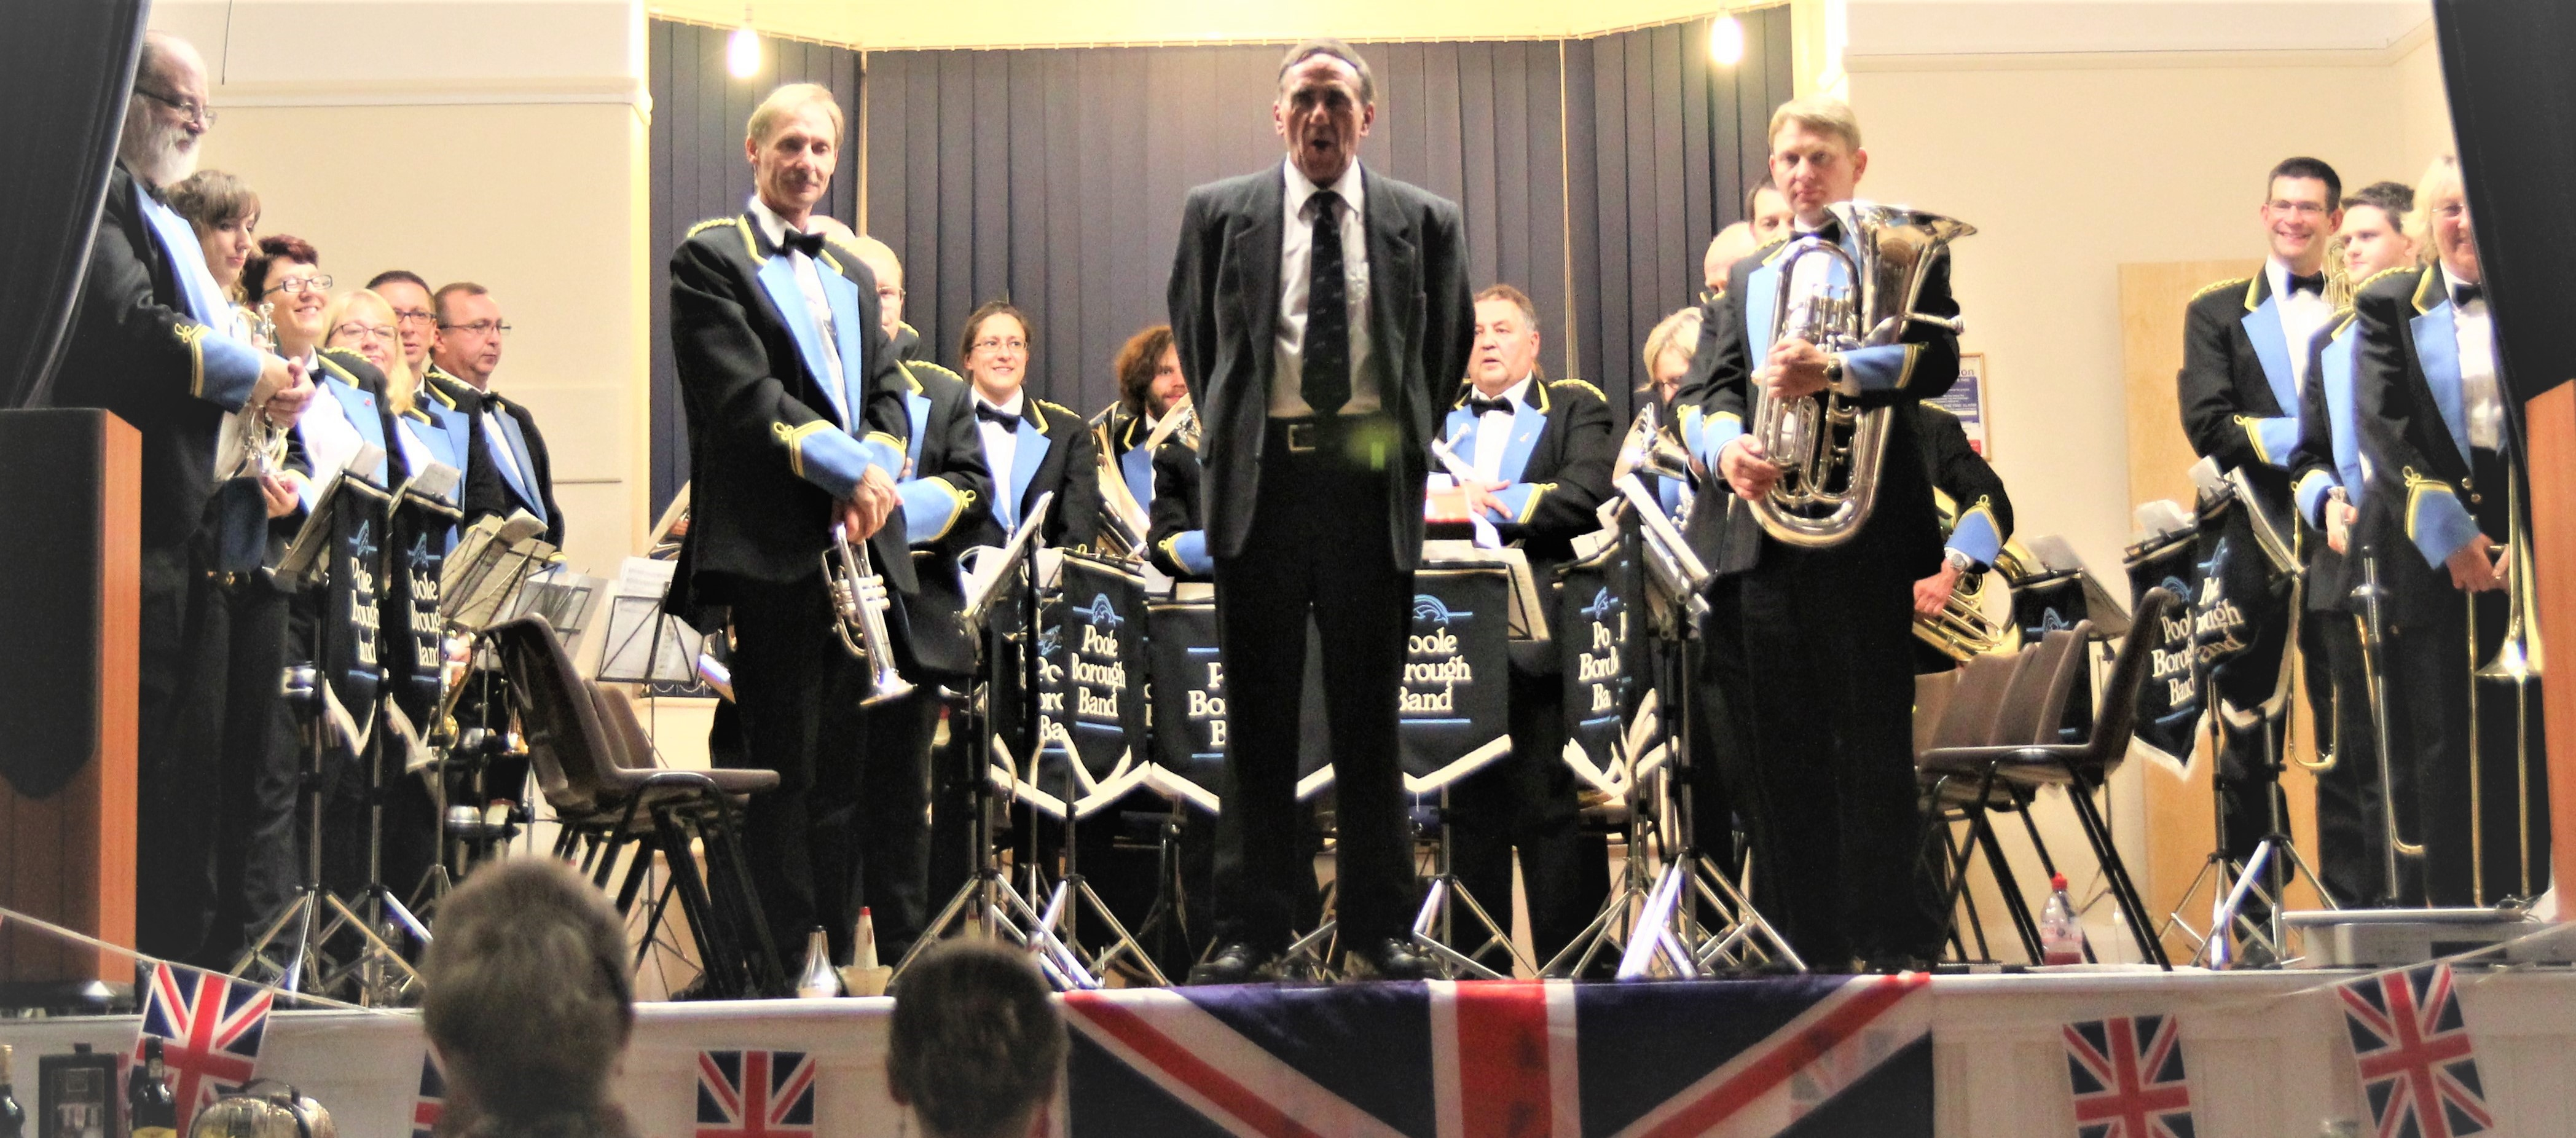 Last Night of the Proms at Canford Cliffs